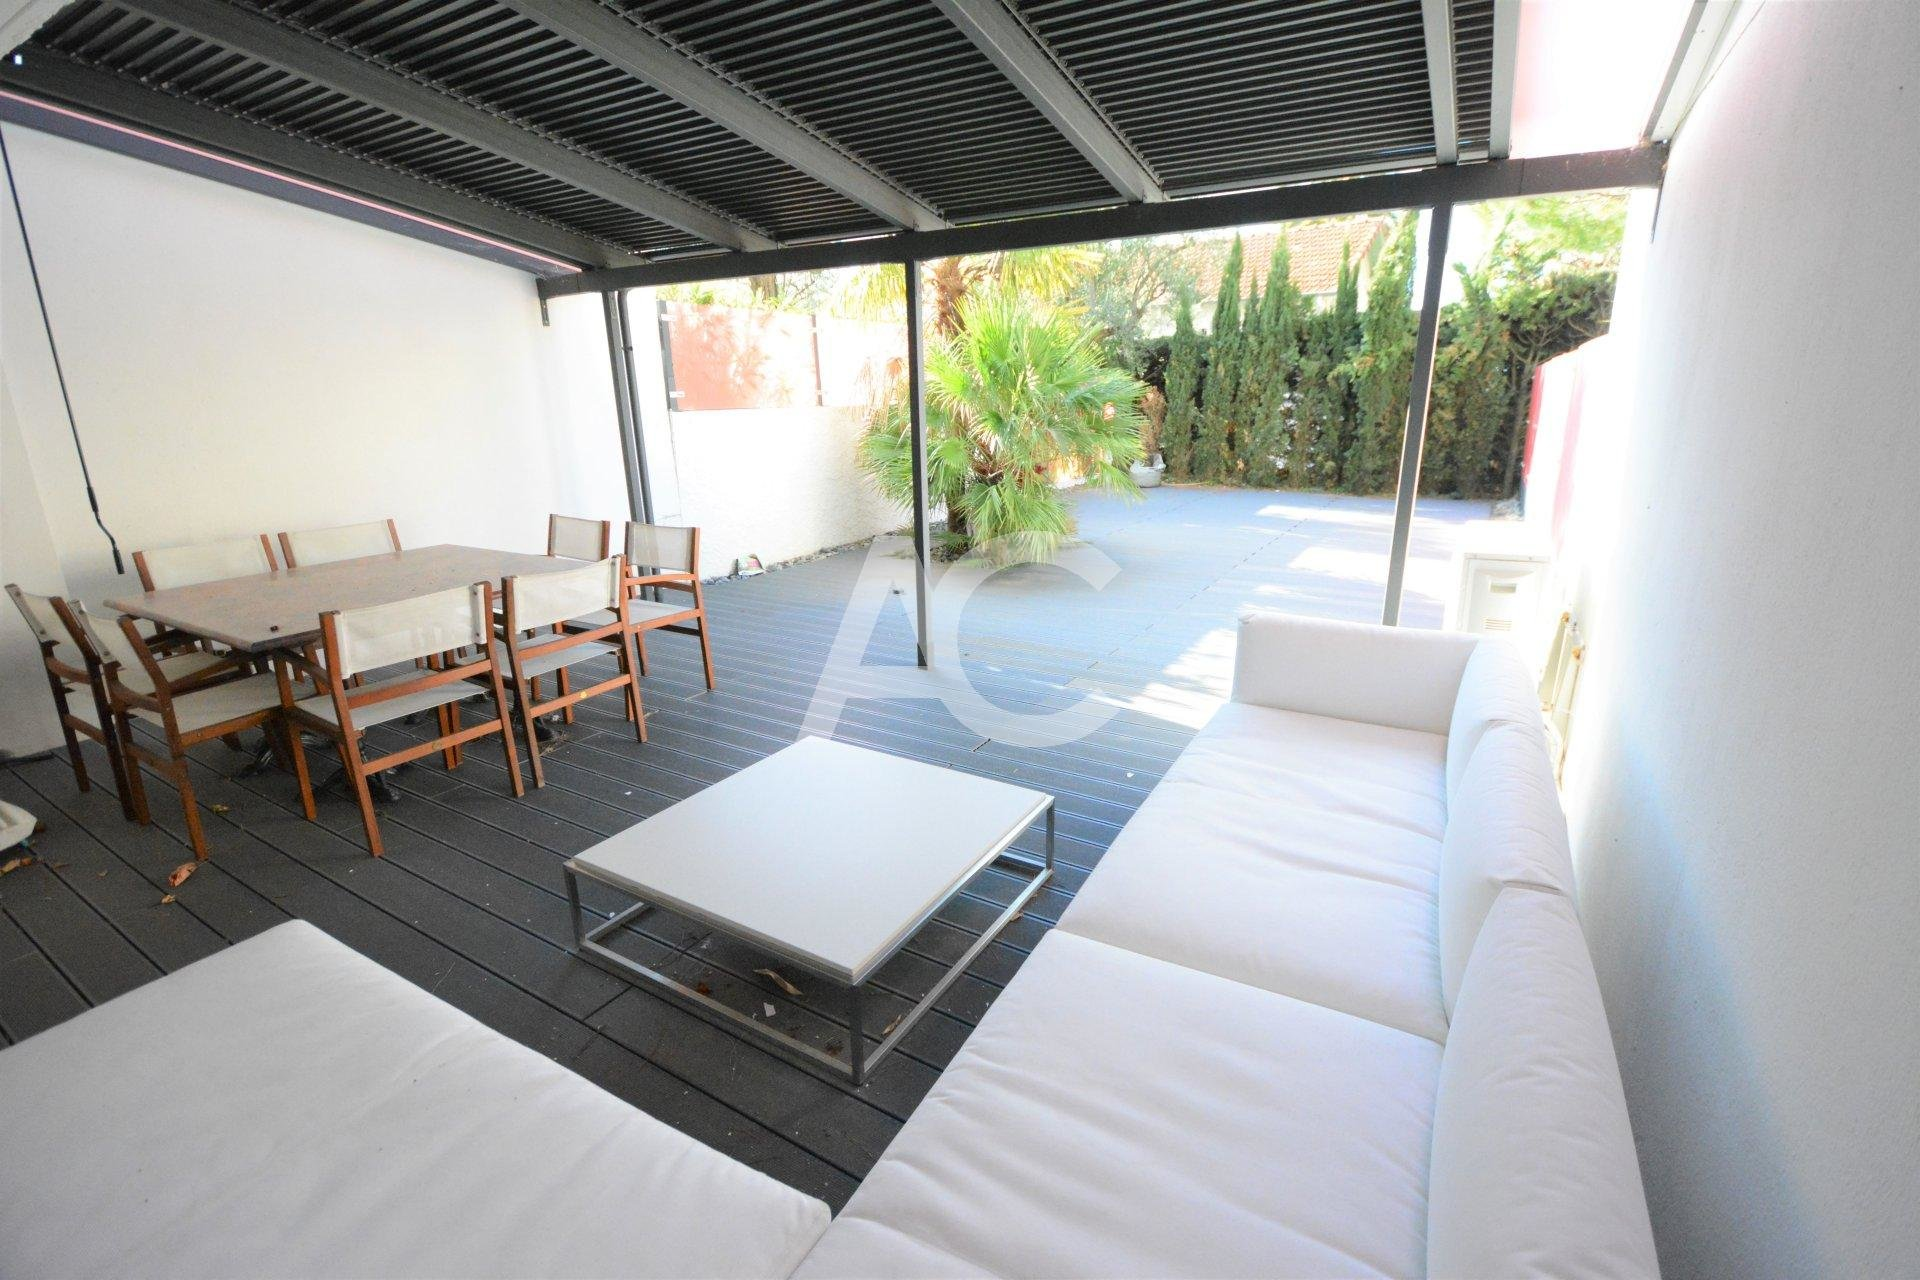 ROSTAGNE - 4 rooms 104m² - Swimming pool